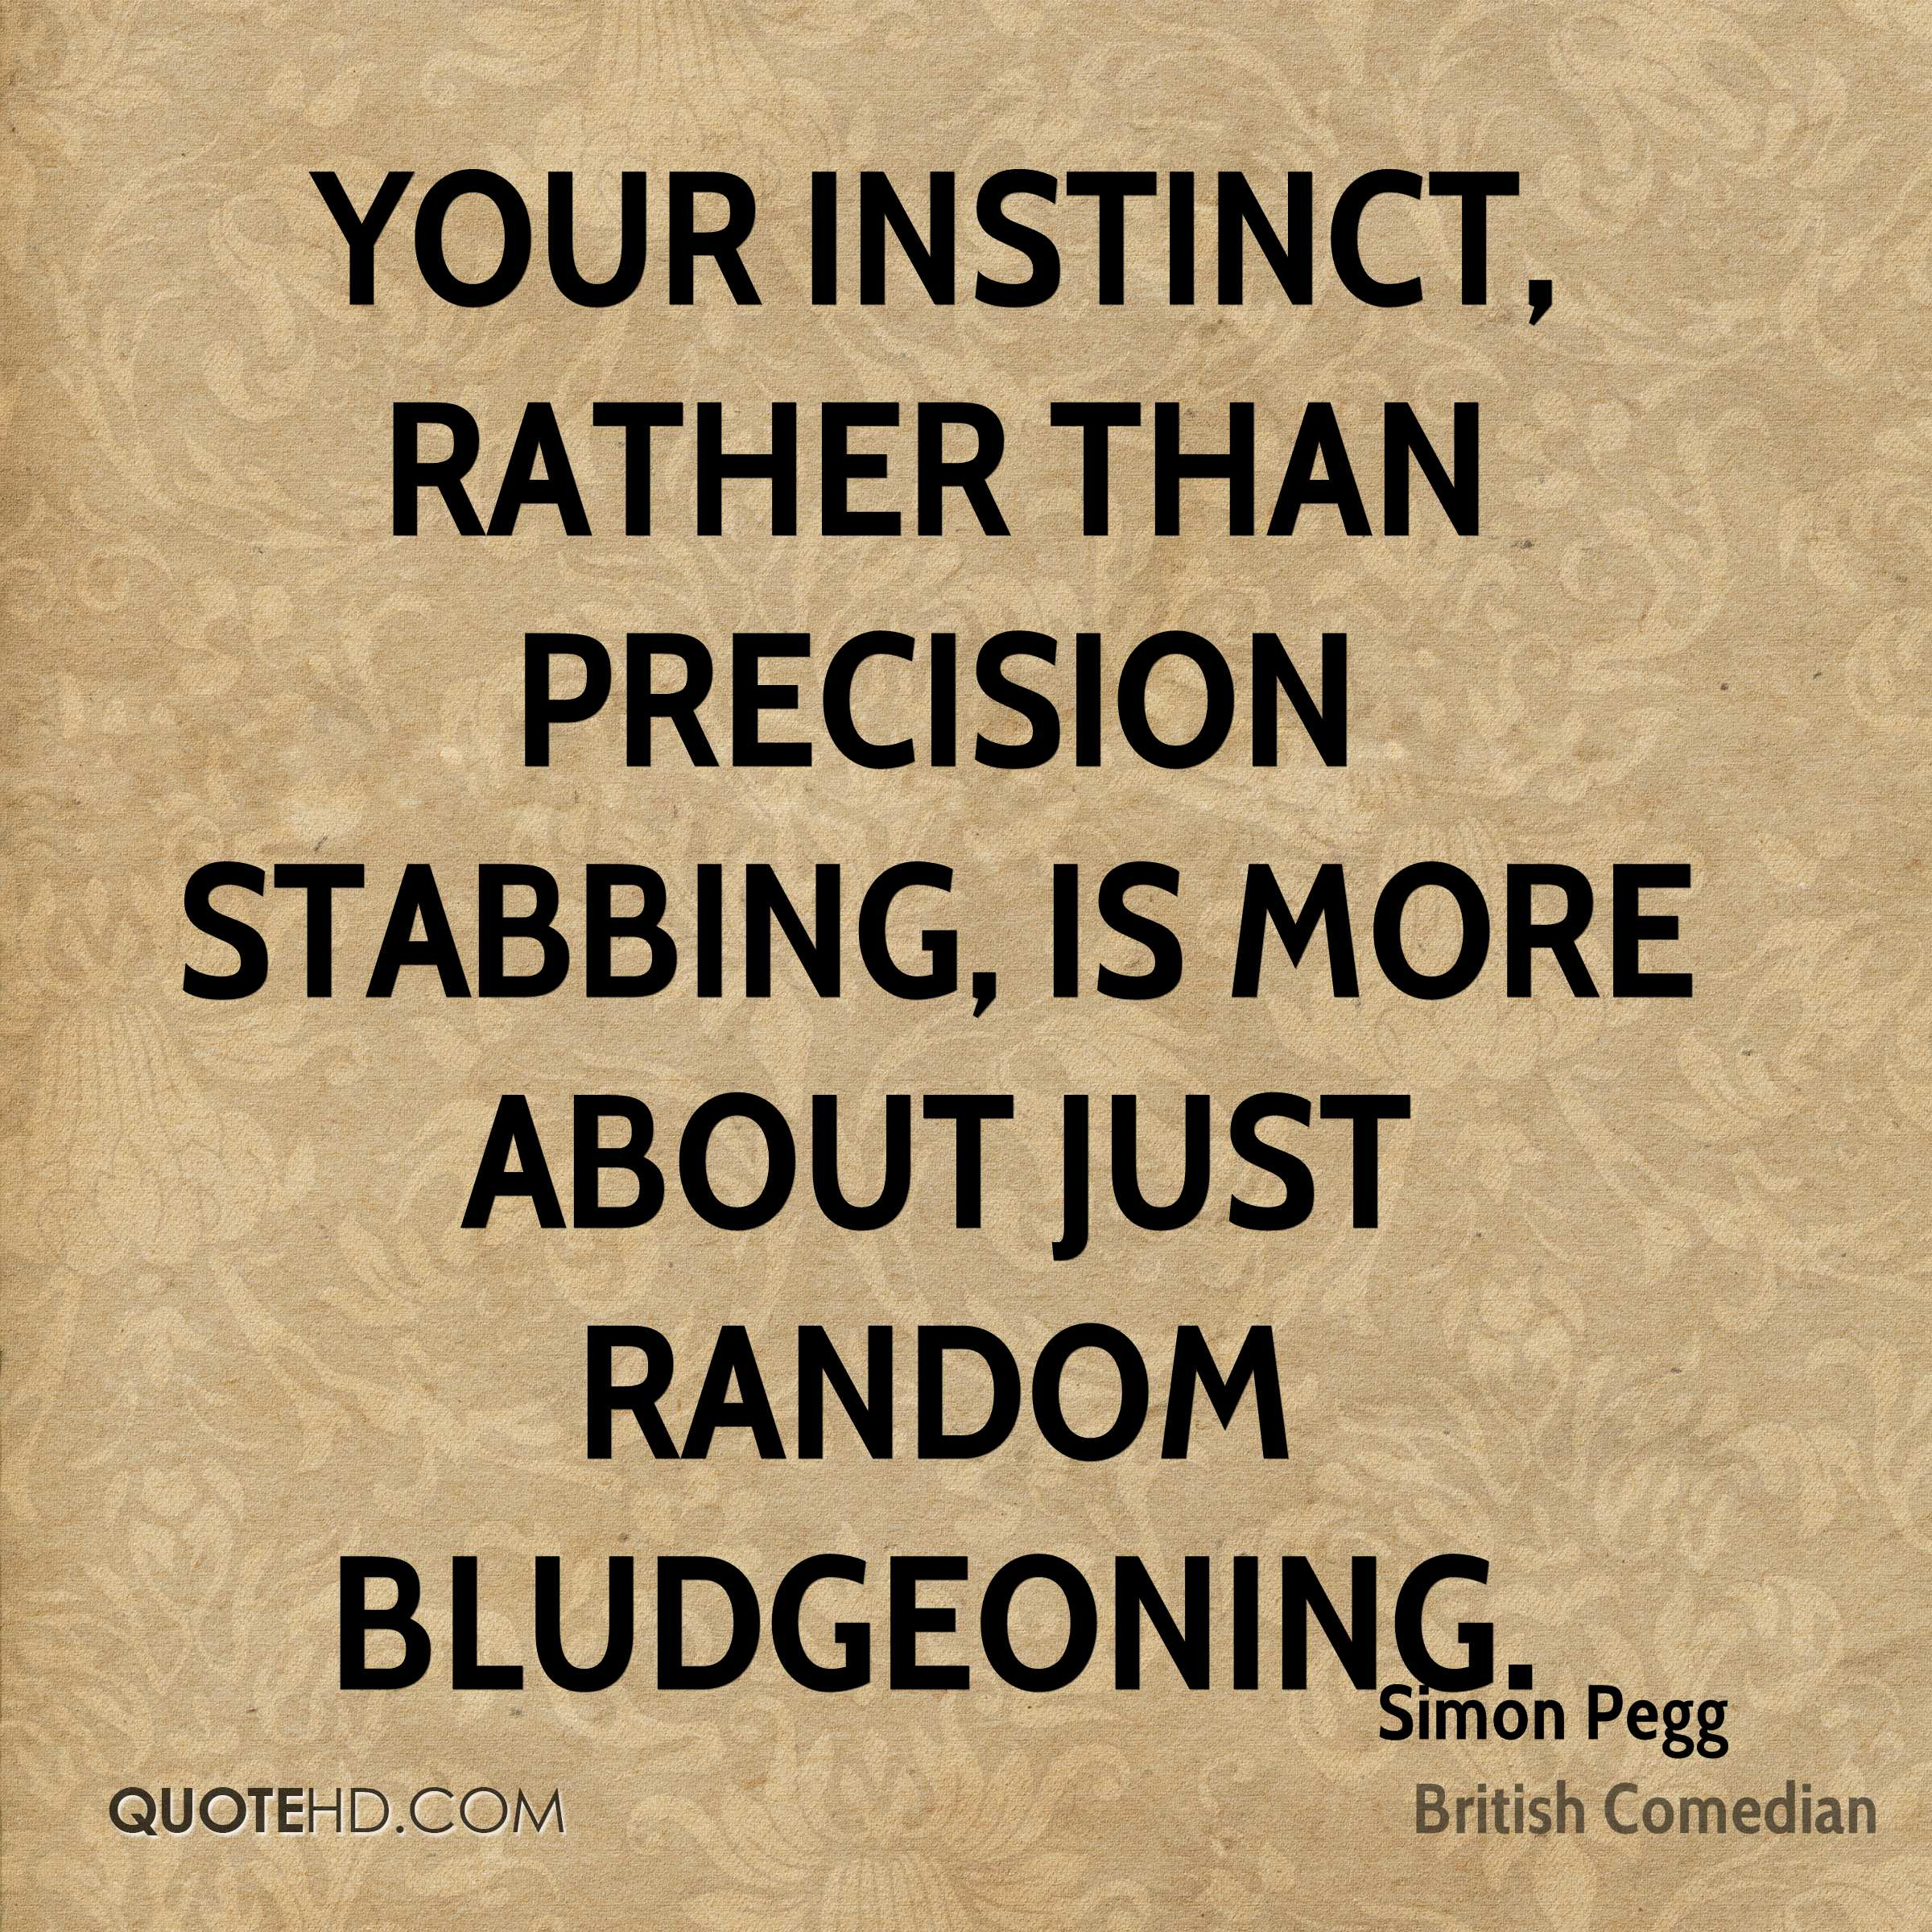 Your instinct, rather than precision stabbing, is more about just random bludgeoning.